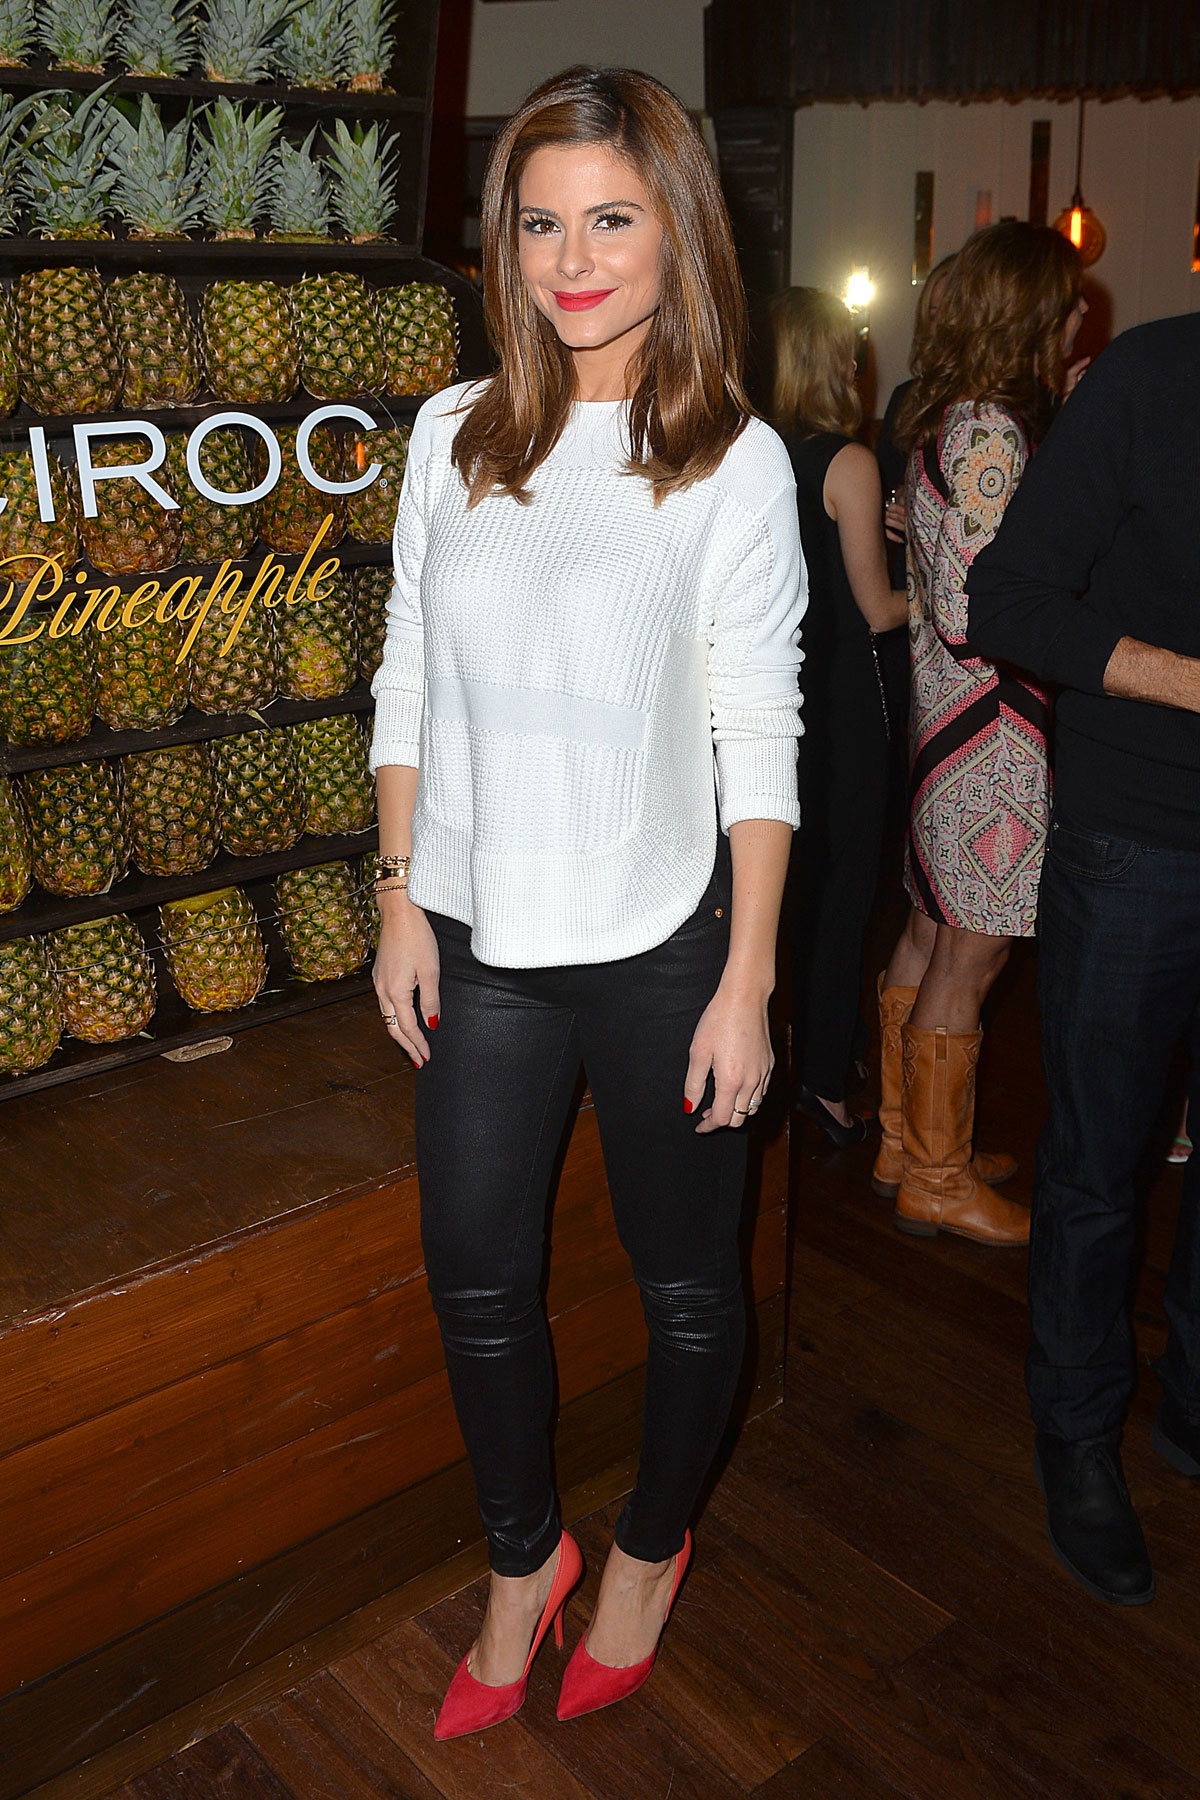 Maria Menounos at Ciroc Pineapple Event